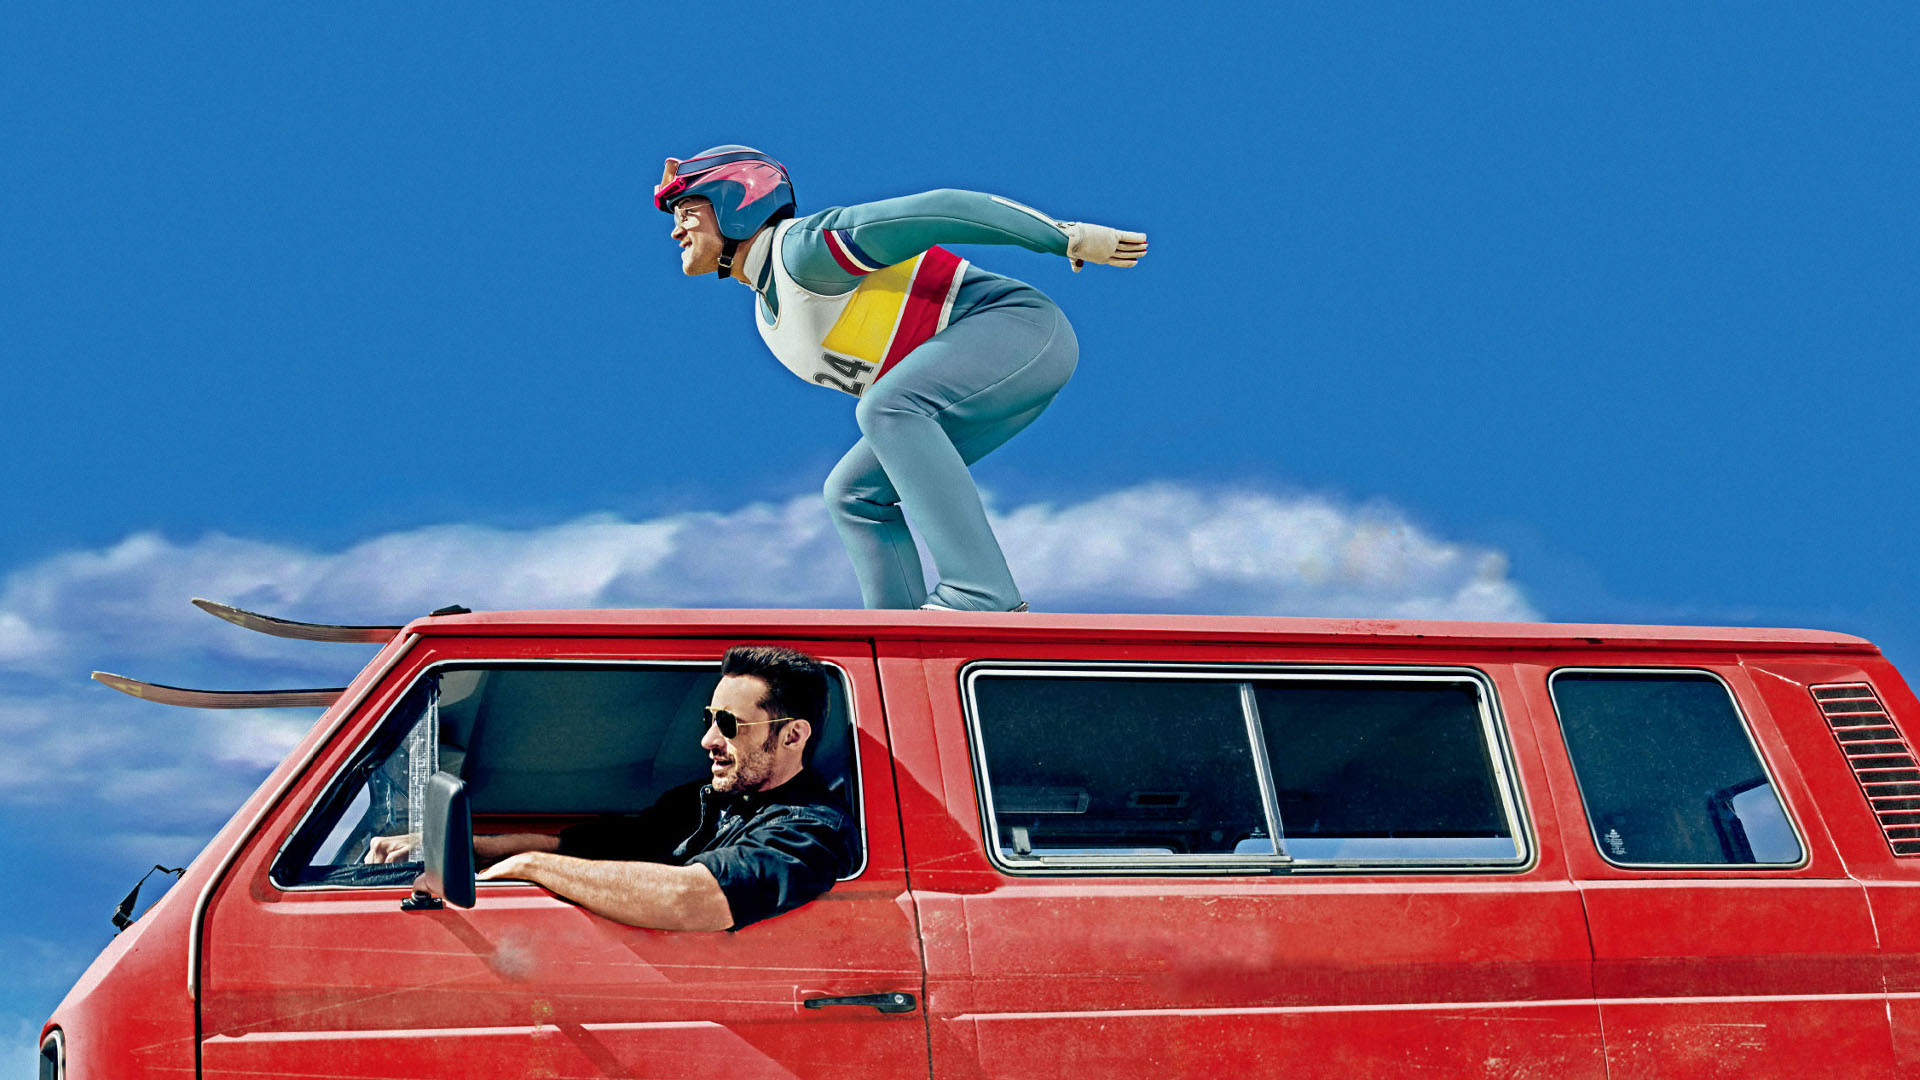 Car Wallpaper Slideshow 5 Eddie The Eagle Hd Wallpapers Backgrounds Wallpaper